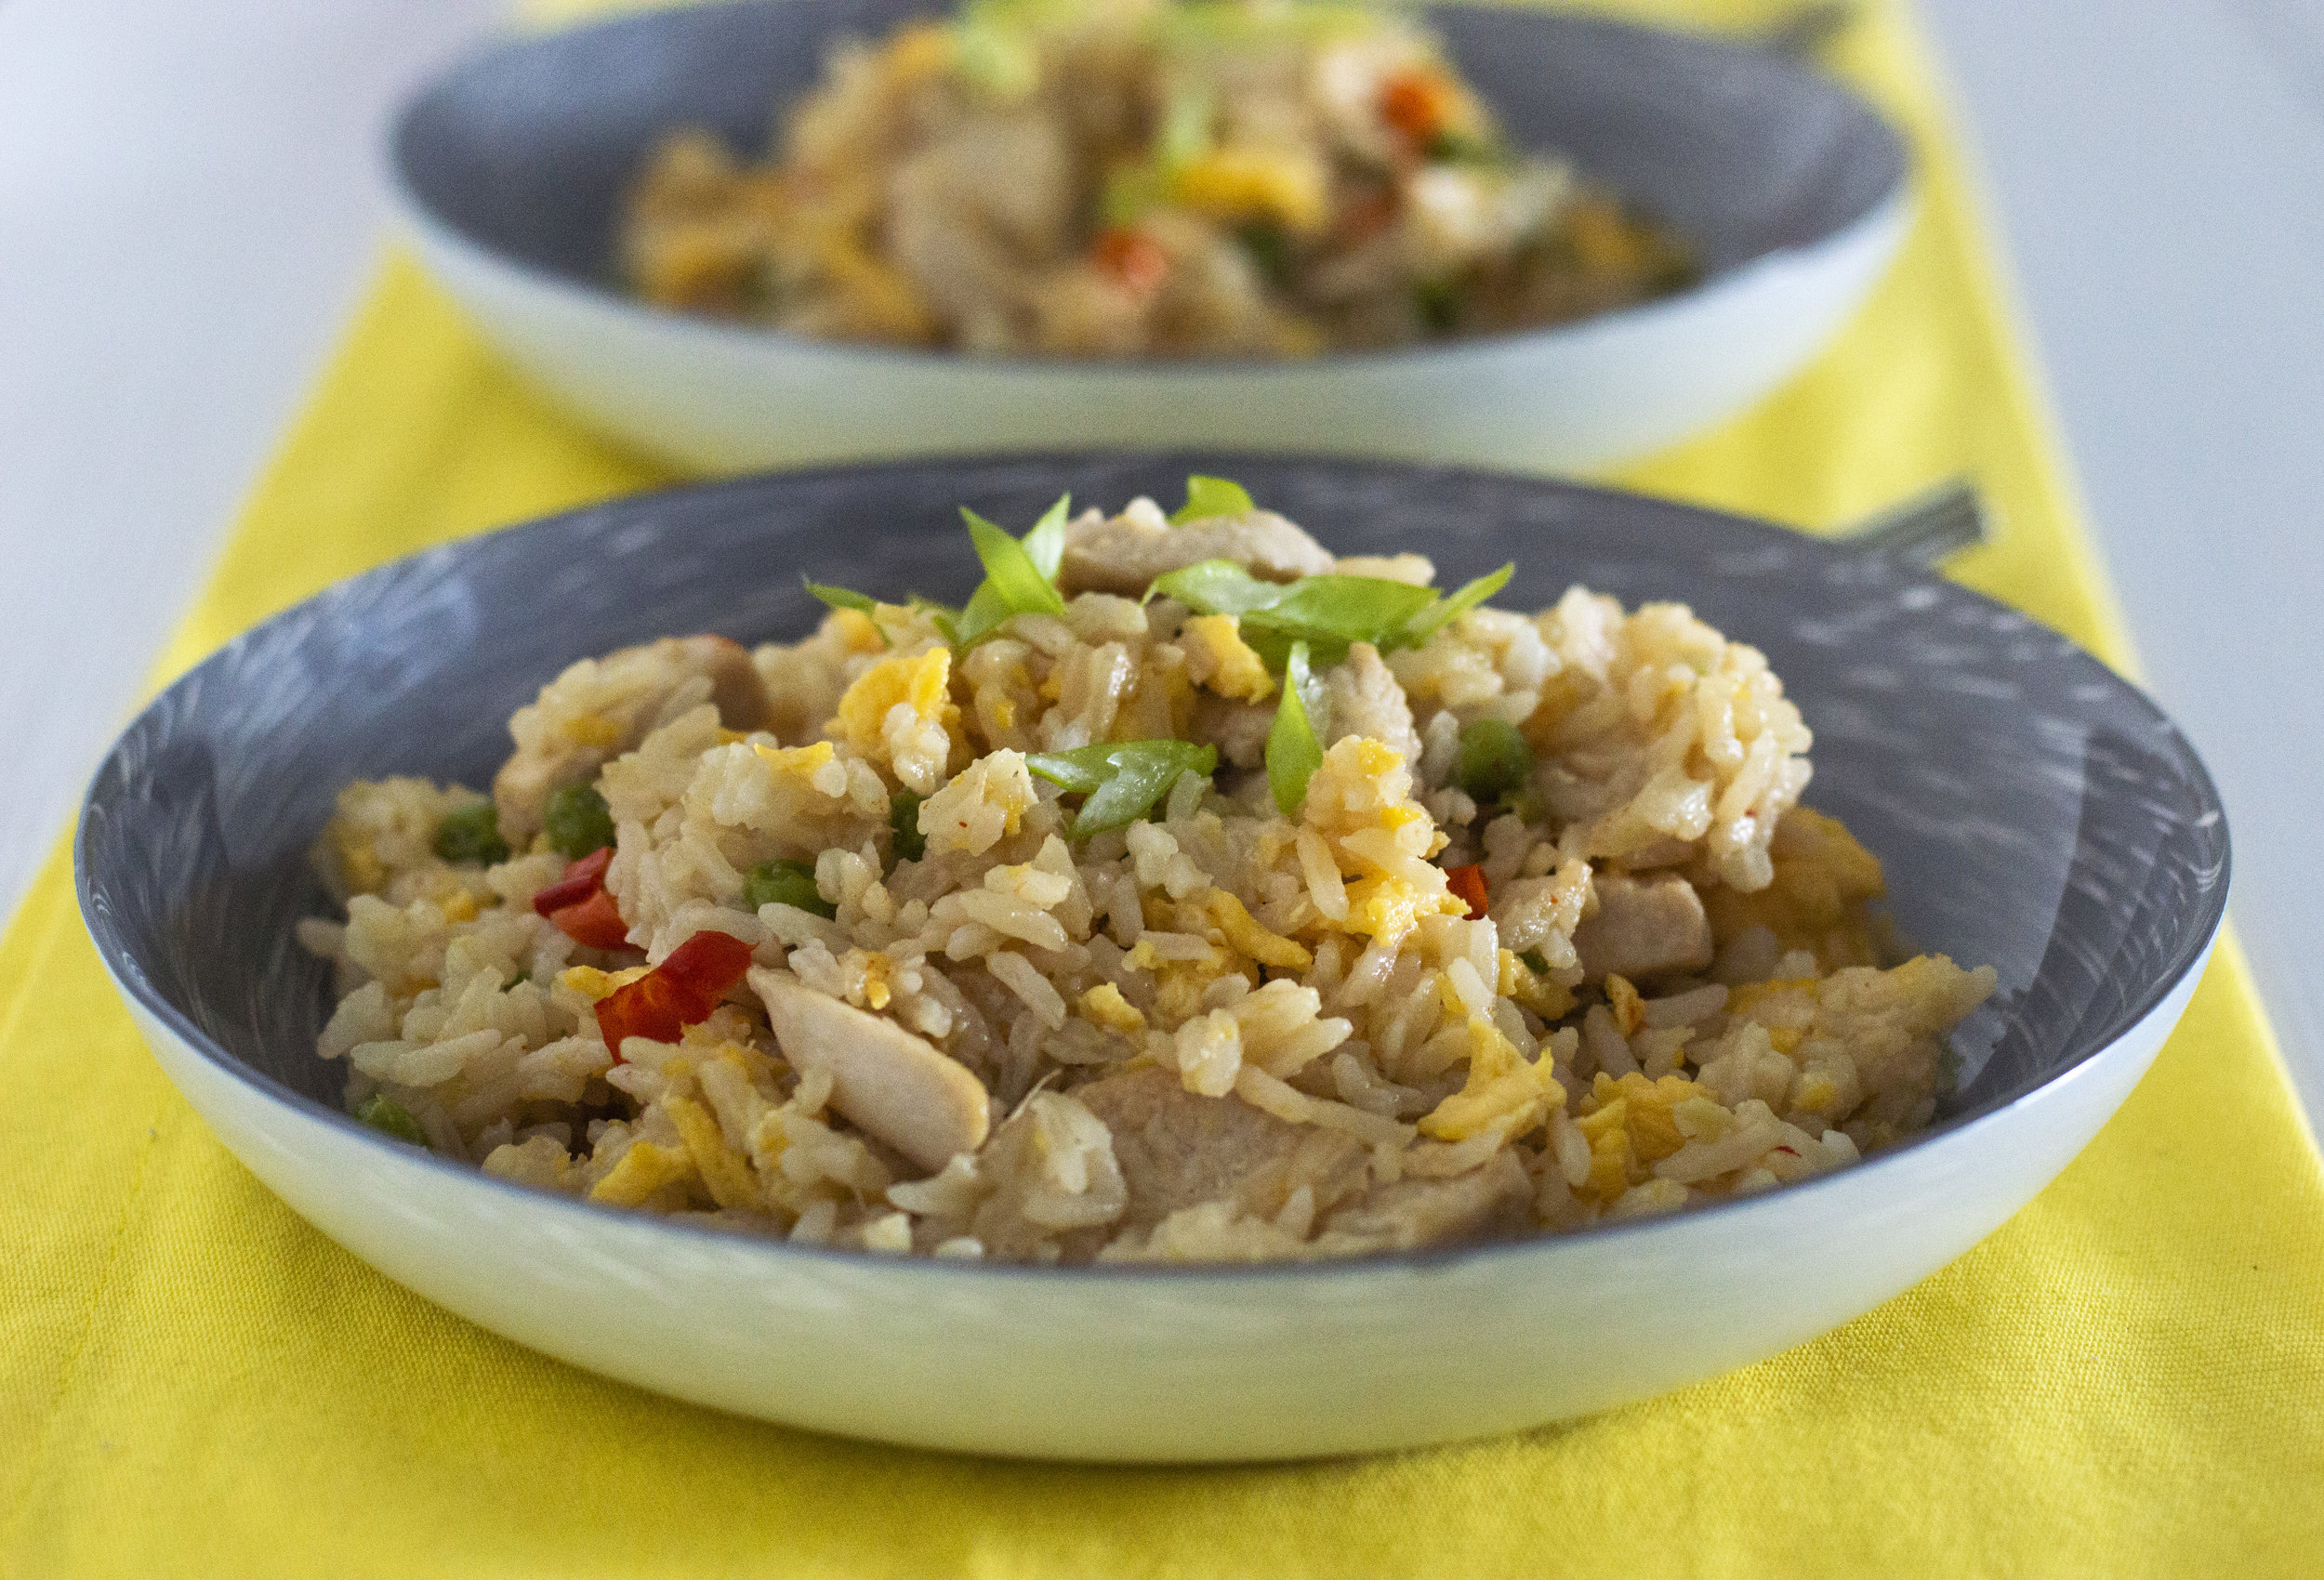 Chicken Egg-Fried Rice - This quick and easy one-pot chicken stir fry is a great dish to meal prep or to feed the family. This recipe uses asian ingredients and cooking technique bringing out a lot of delicious flavours. This is a also a inexpensive dish costing approximatly £1.10 per portion.